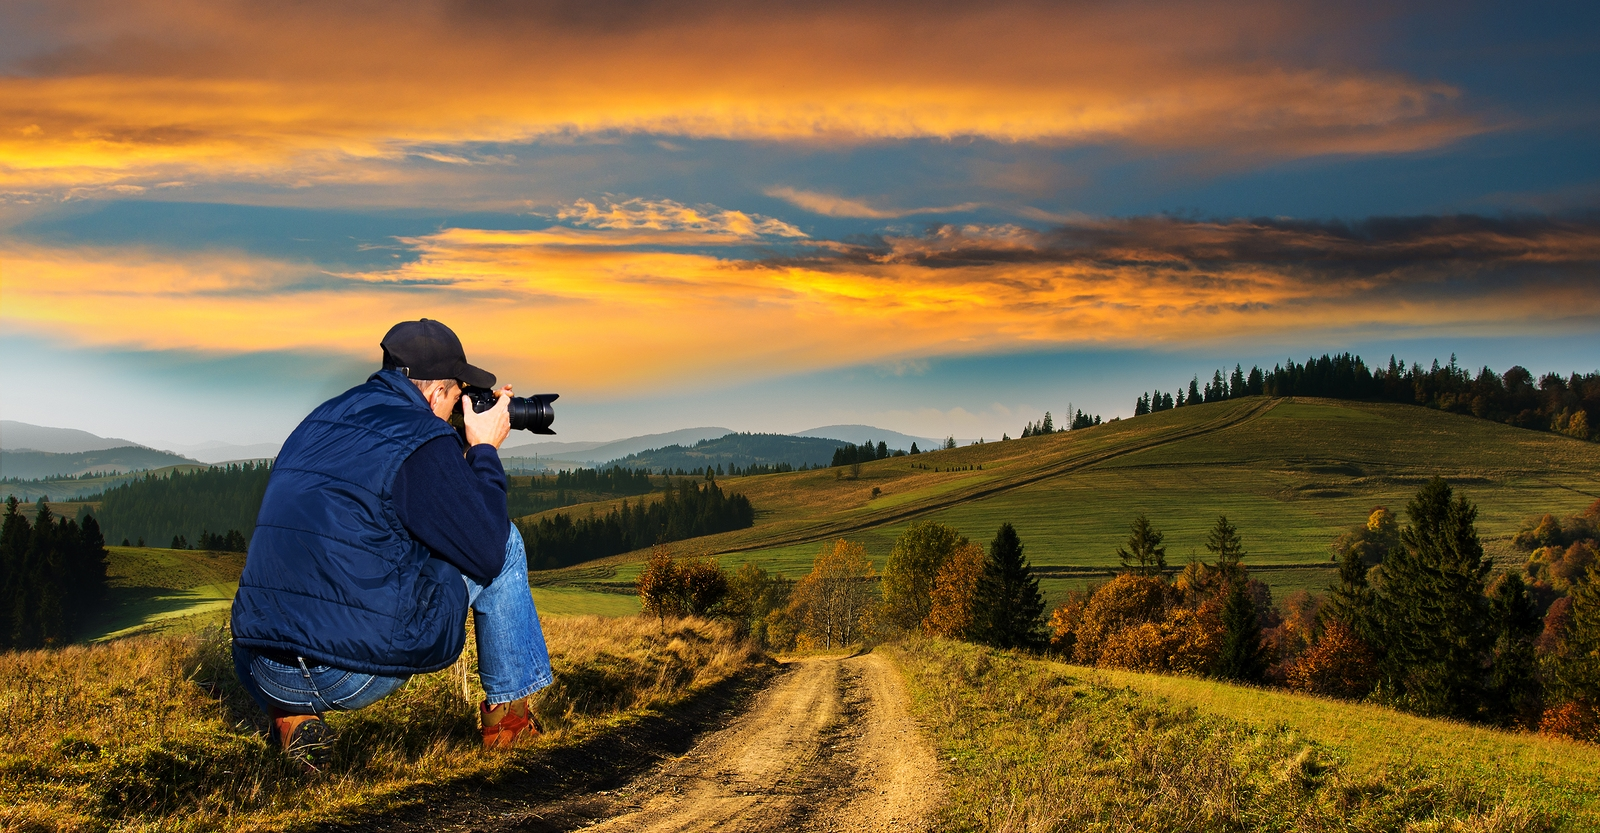 Create Incredible Landscape Images With This Easy Tutorial